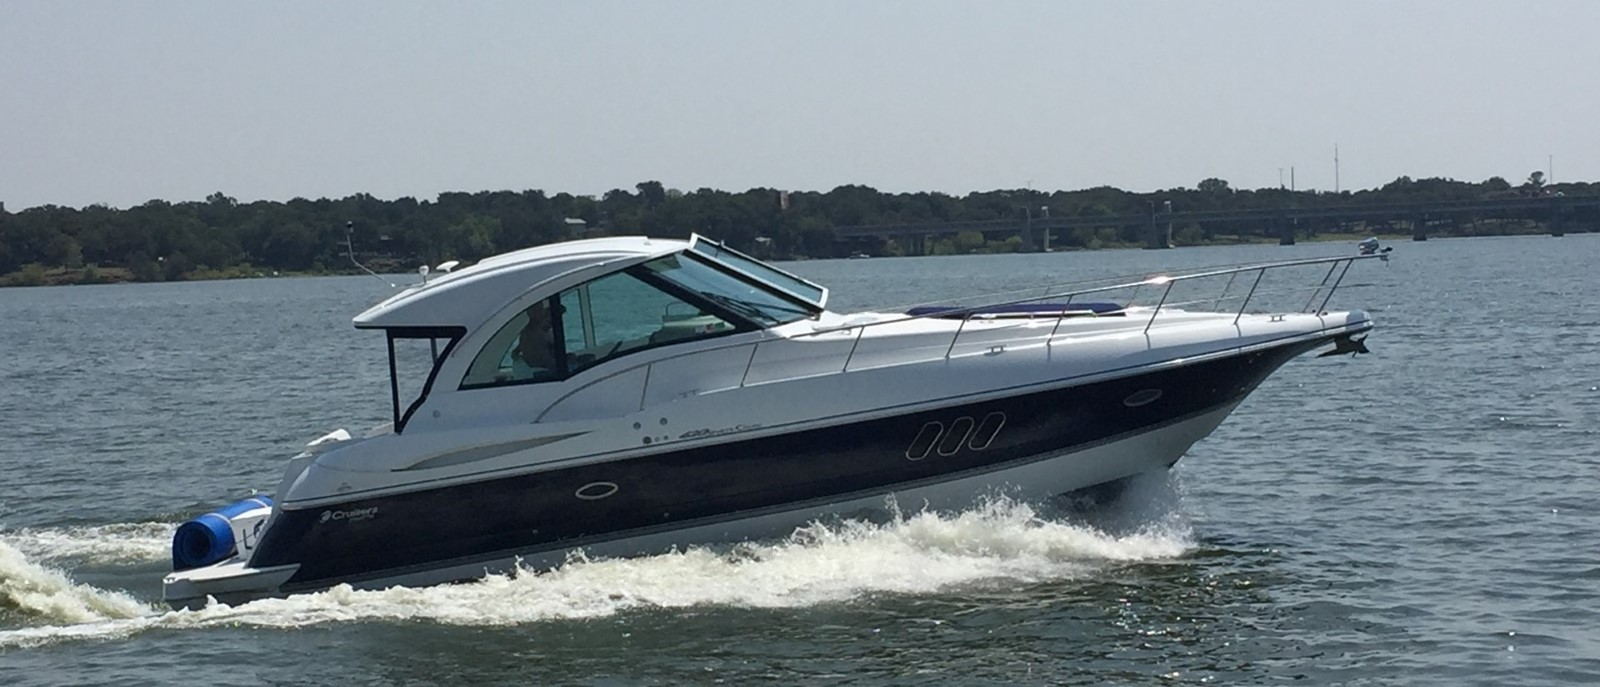 2010 CRUISERS YACHTS 420 Sport Coupe Cruiser 1880614